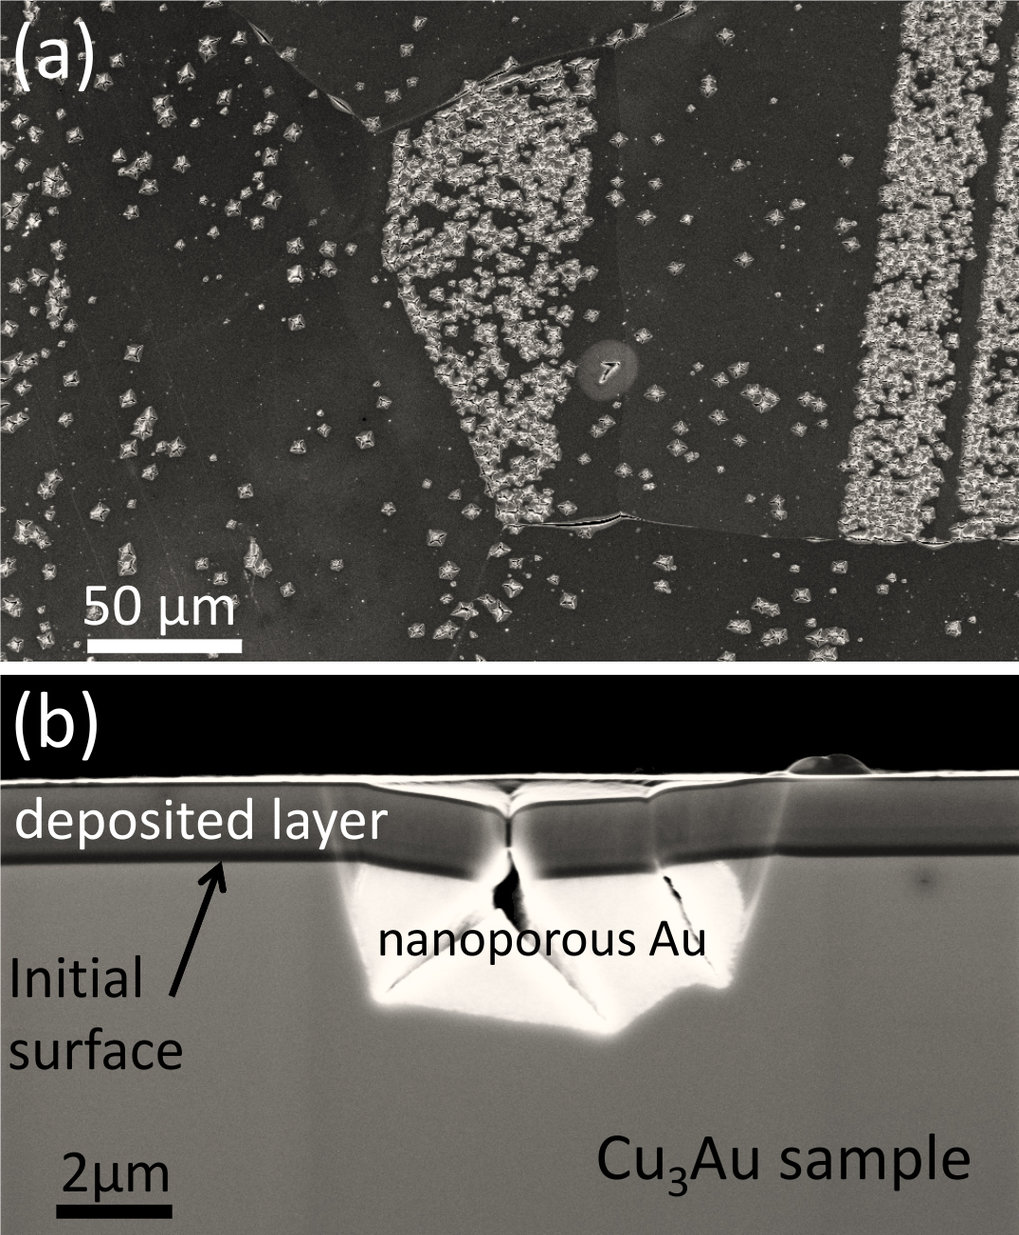 Fig.2: Scanning electron micrographs of a dealloyed Cu3Au polycrystalline sample. (a) Plane view showing grains with different crack densities. (b) Cross-section showing one specific crack that extends into the nanoporous material.